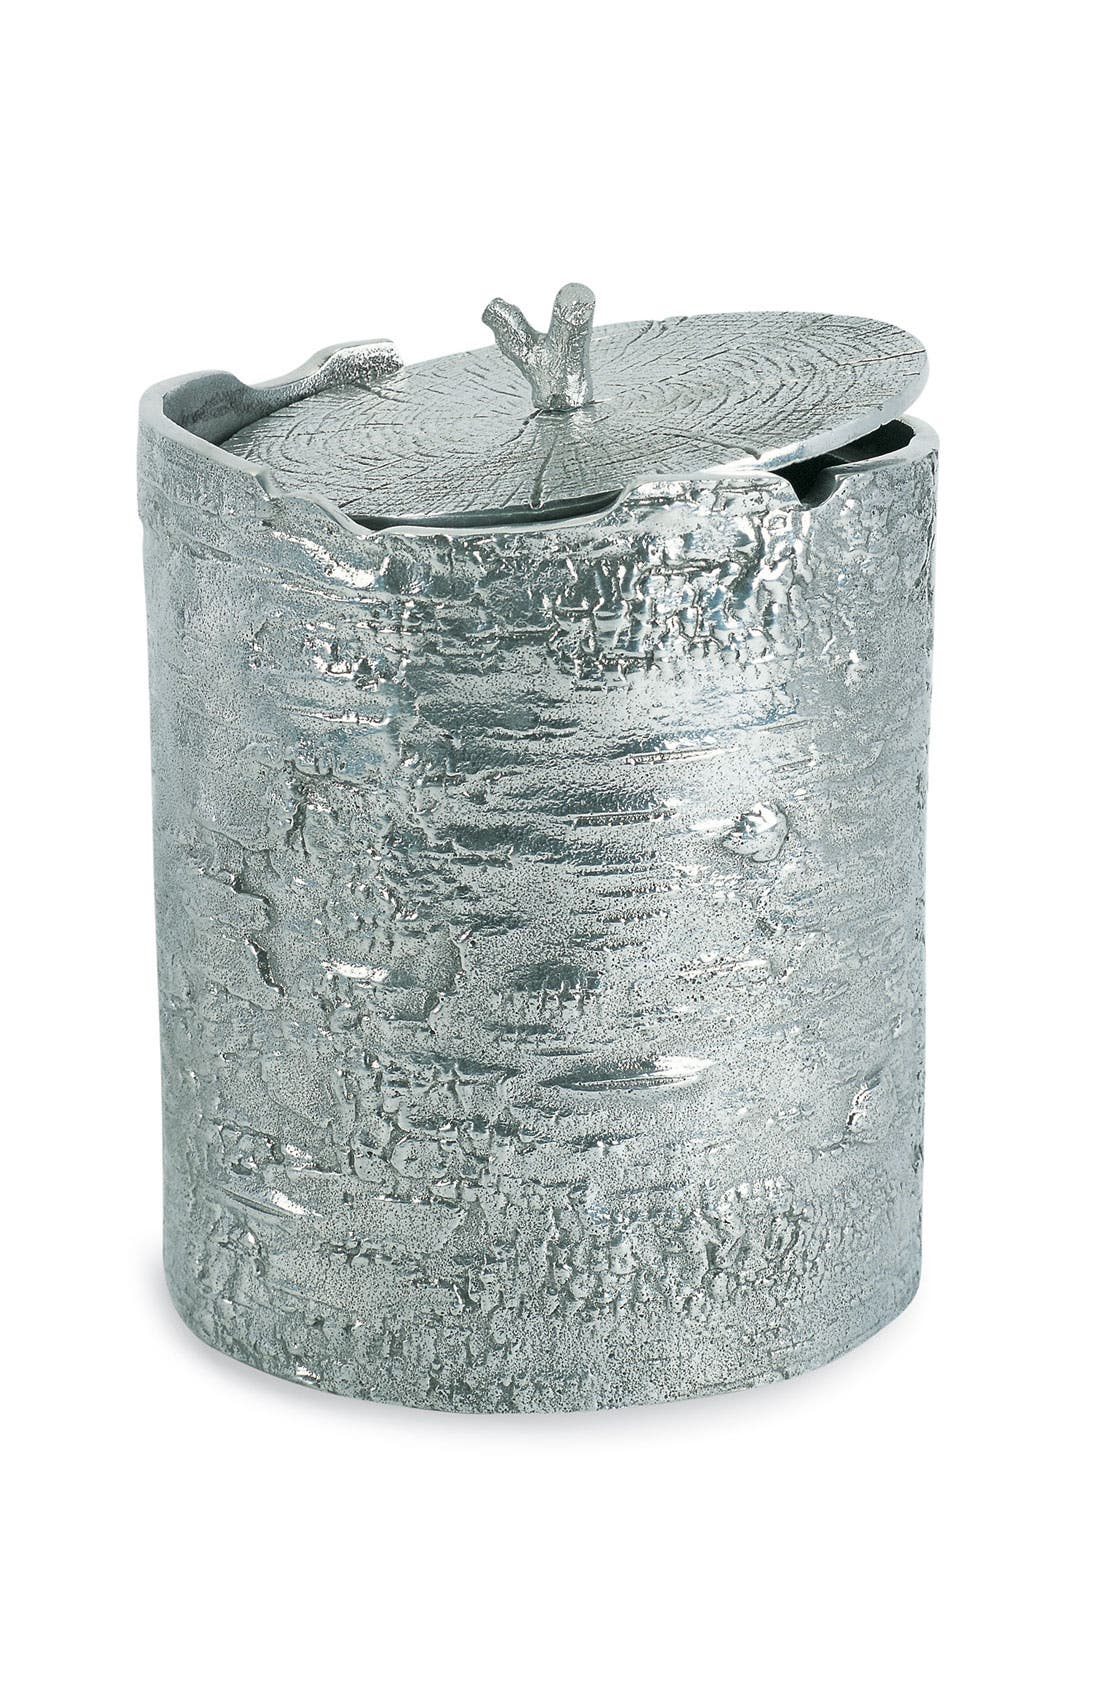 Main Image - Michael Aram 'Bark' Polished Ice Bucket